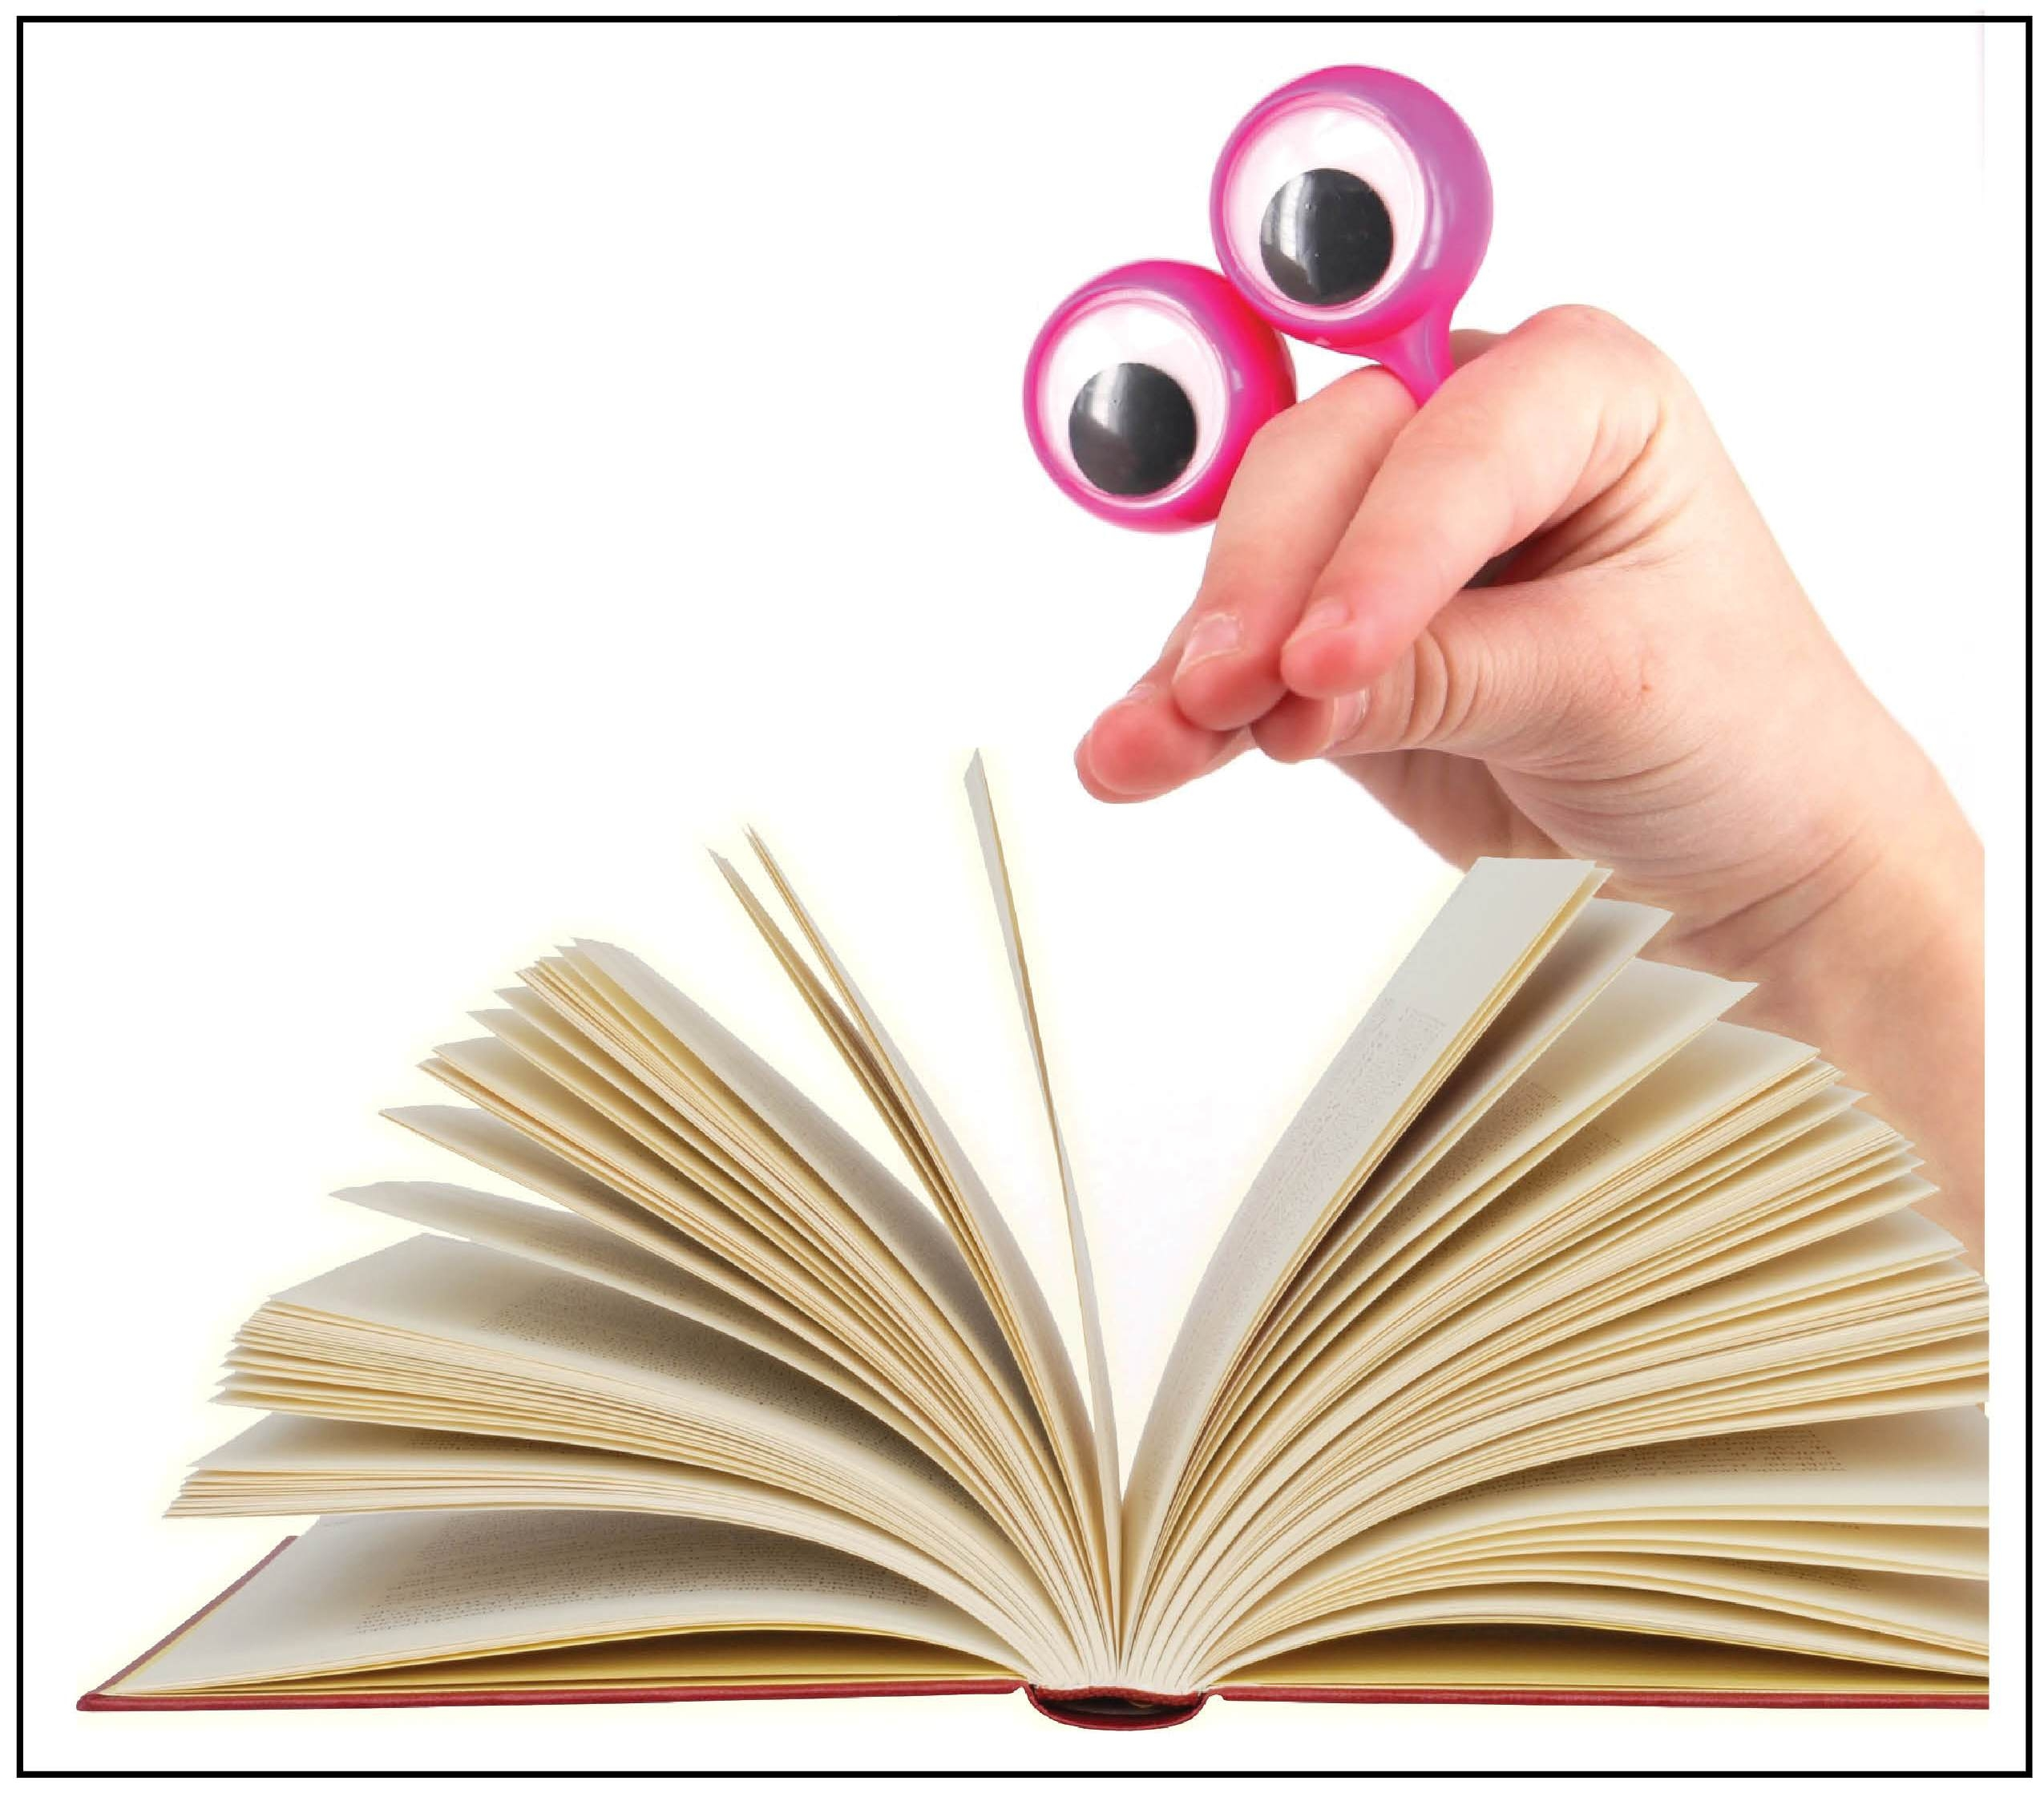 Peepers help students keep their eyes on the text for evidence-based reading responses